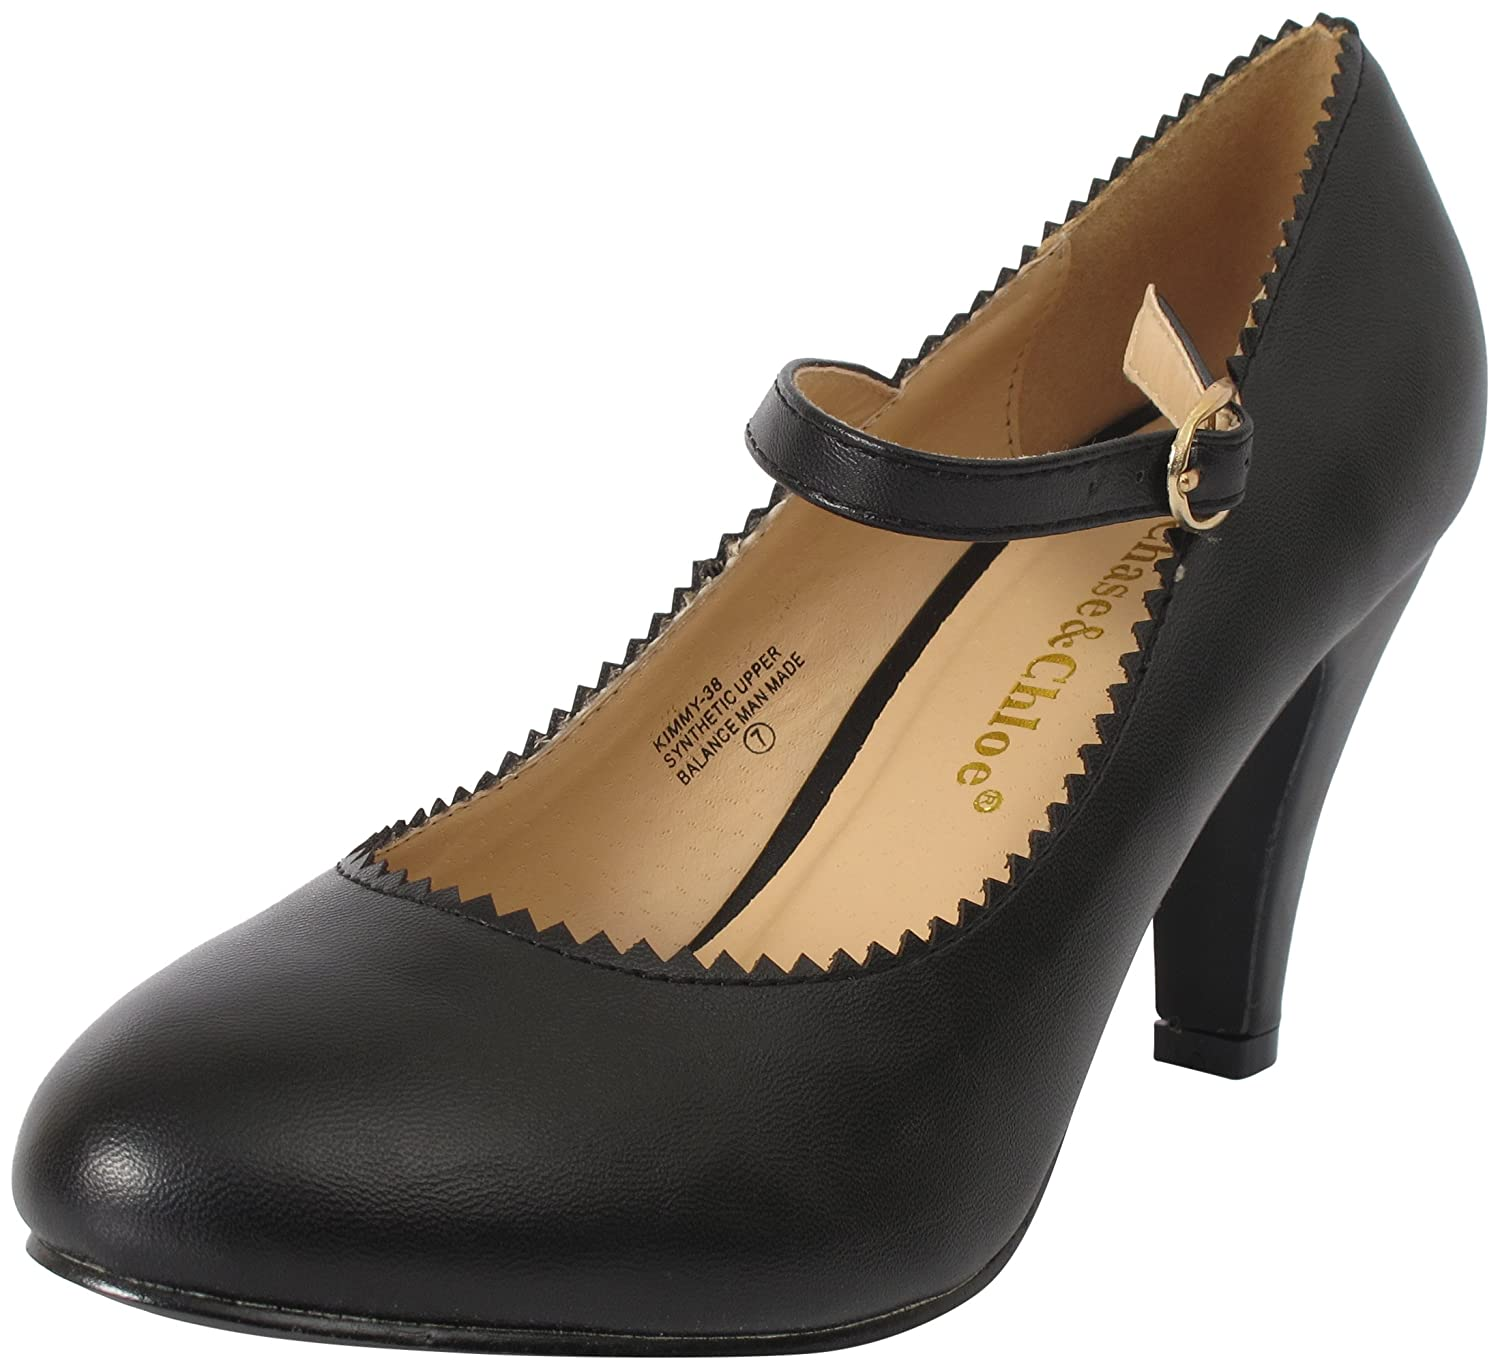 1940s Womens Footwear Chase And Chloe Kimmy-38 Jagged Edge Vintage Mary Jane Strap Pump Heel $31.90 AT vintagedancer.com